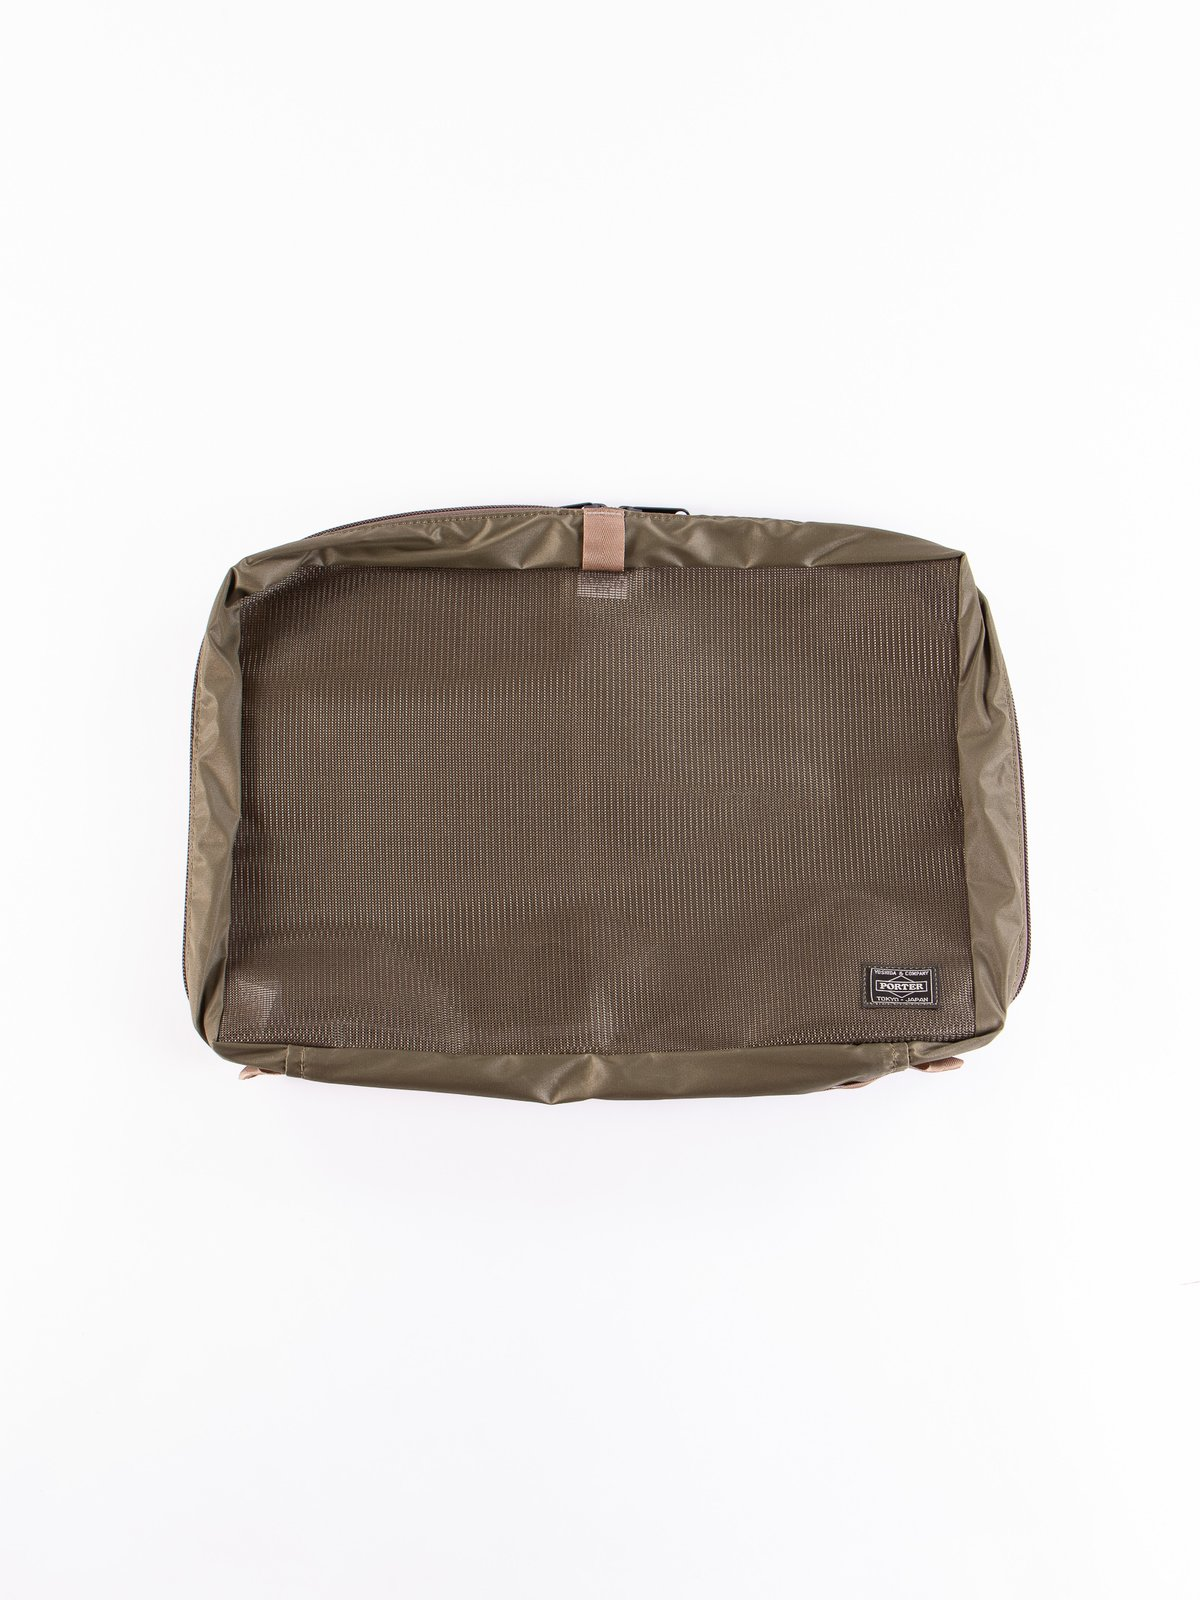 Olive Drab Snack Pack 09805 Pouch Medium - Image 1